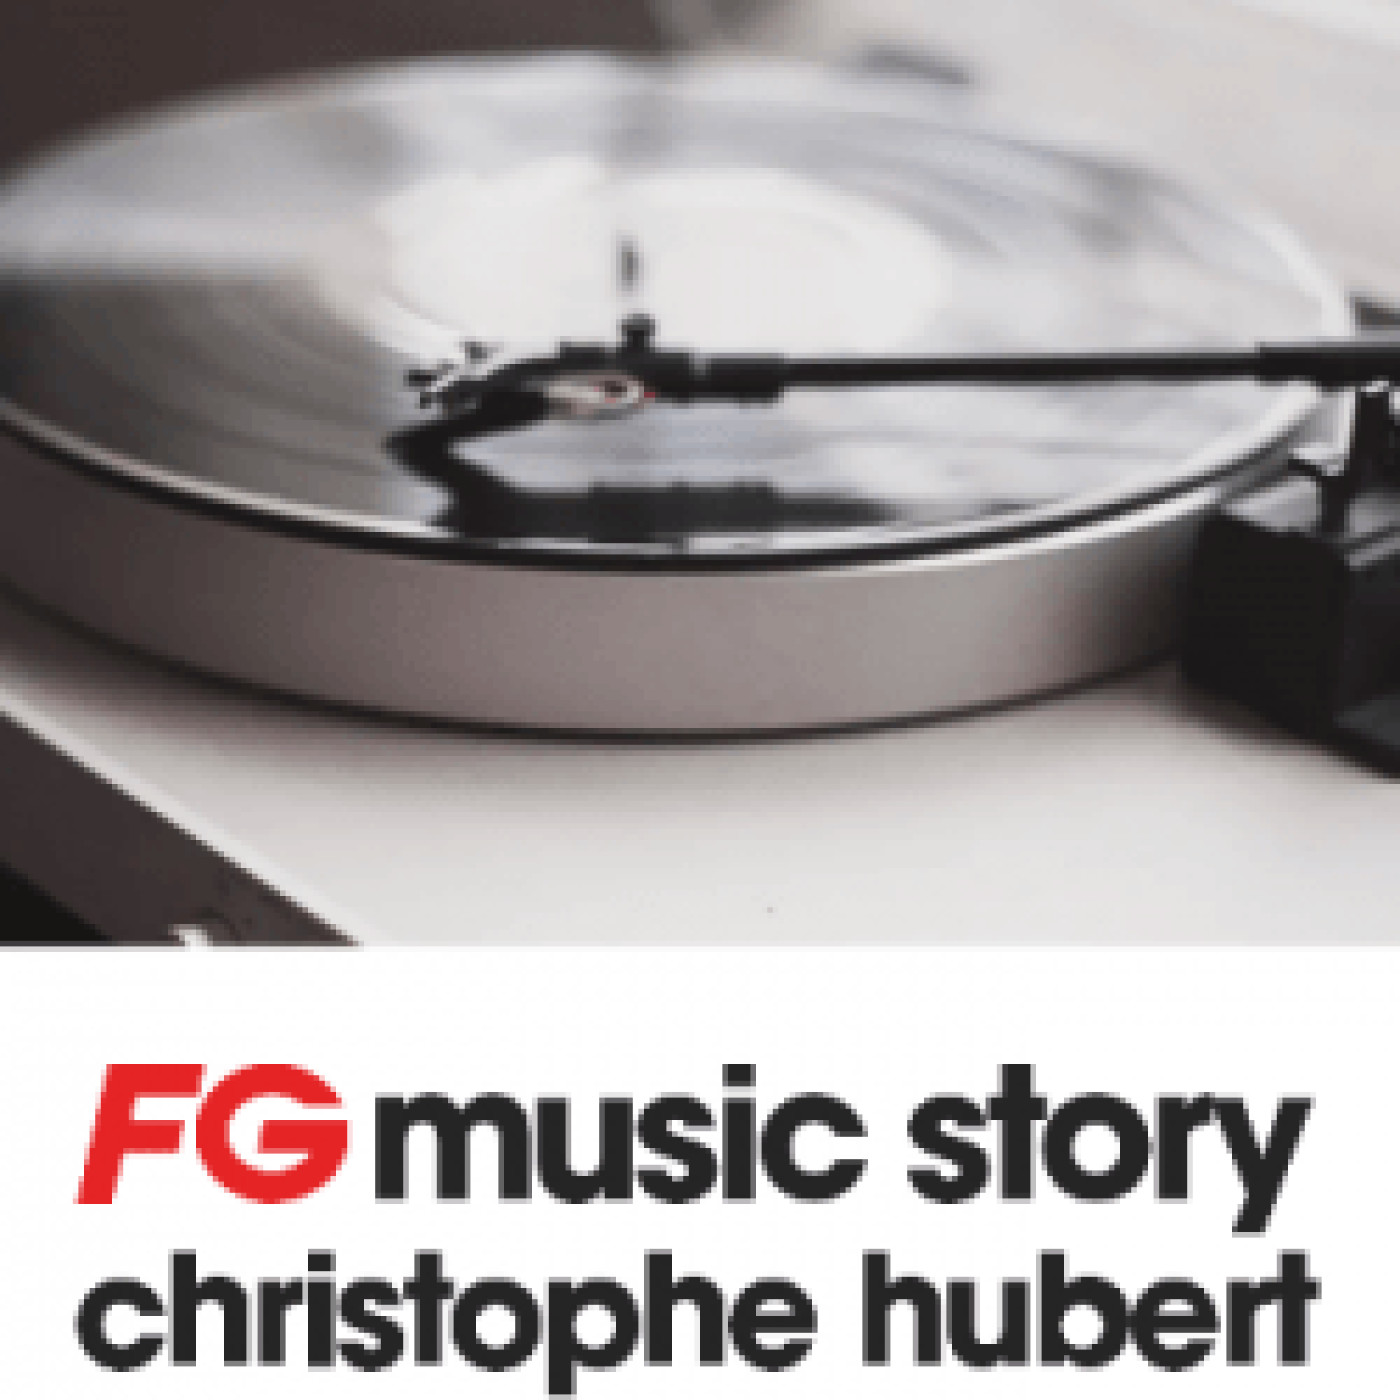 FG MUSIC STORY : ONE MORE TIME